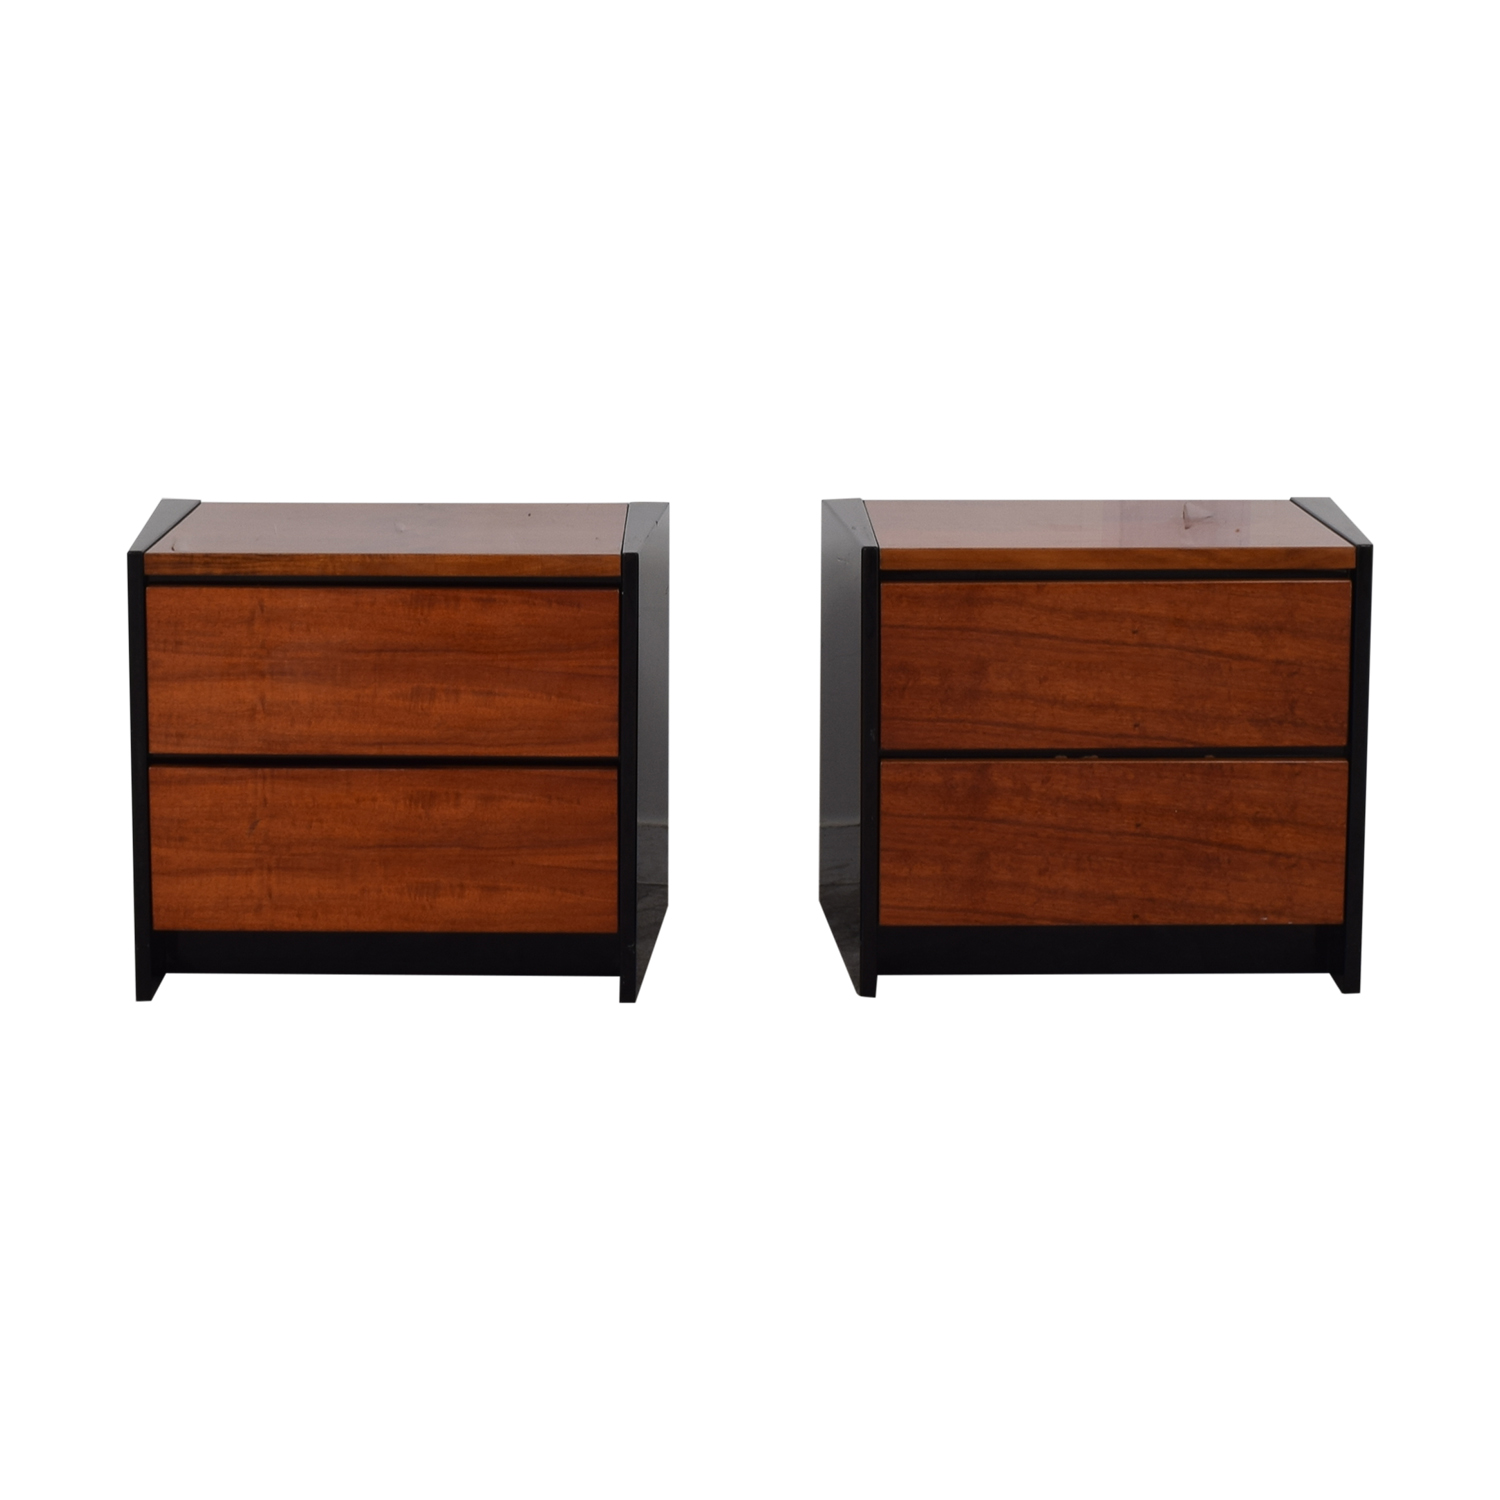 buy Hendredon Henredon Two-Drawer Nightstands online